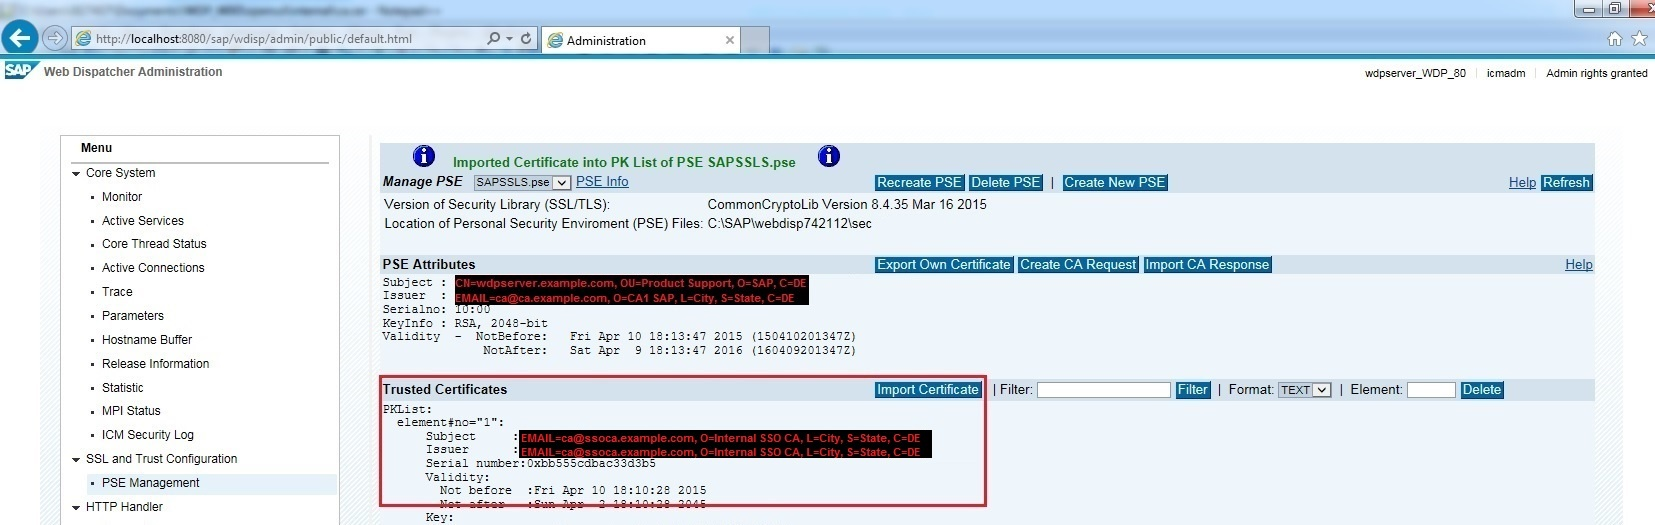 Managing PSE files at the Web Dispatcher - Application